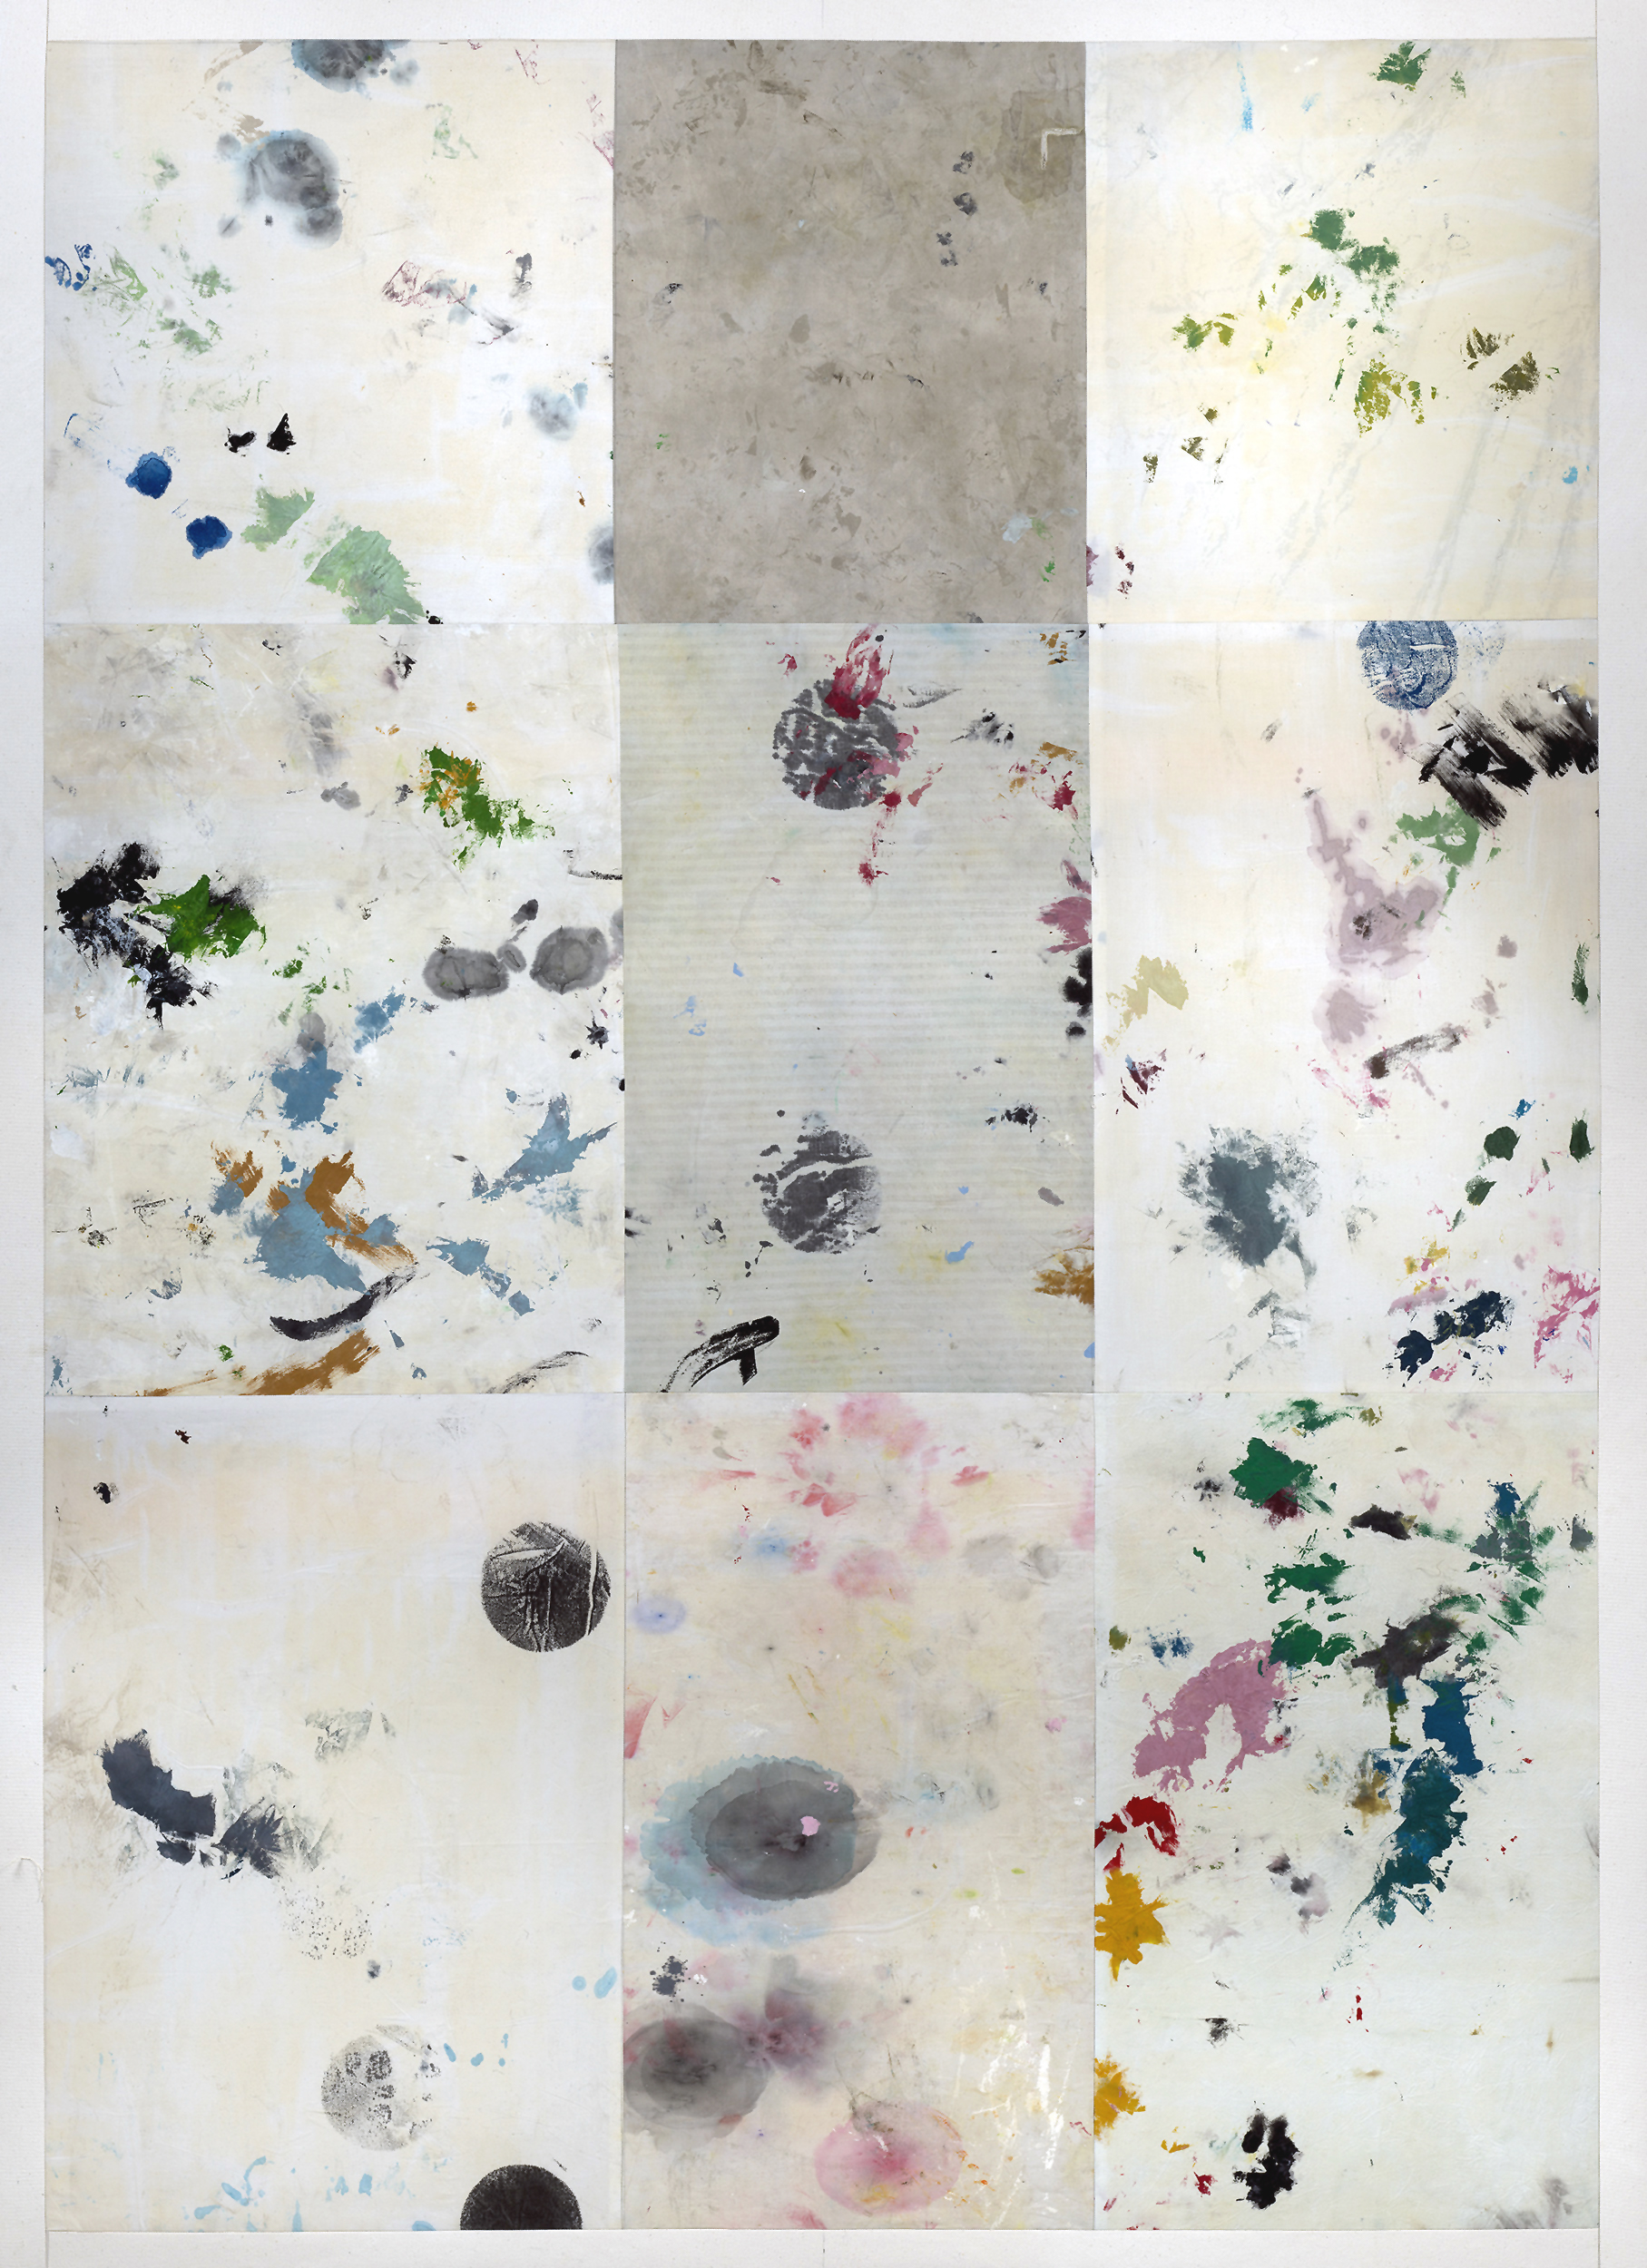 acrylic on cotton rag abstract work by spiller + cameron